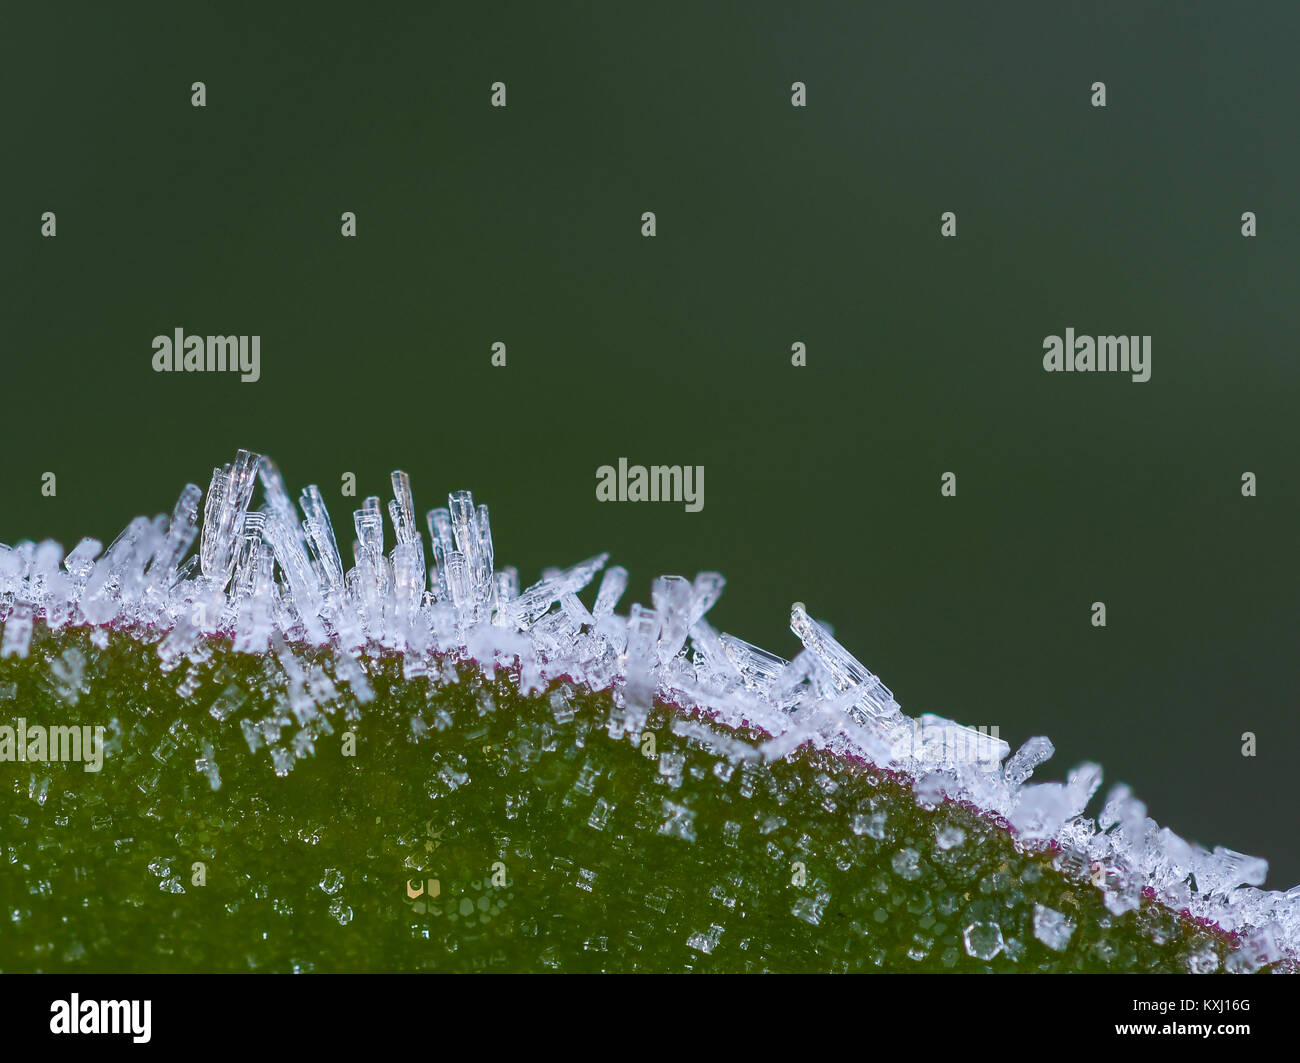 ice crystals on the edges of a leaf - Stock Image